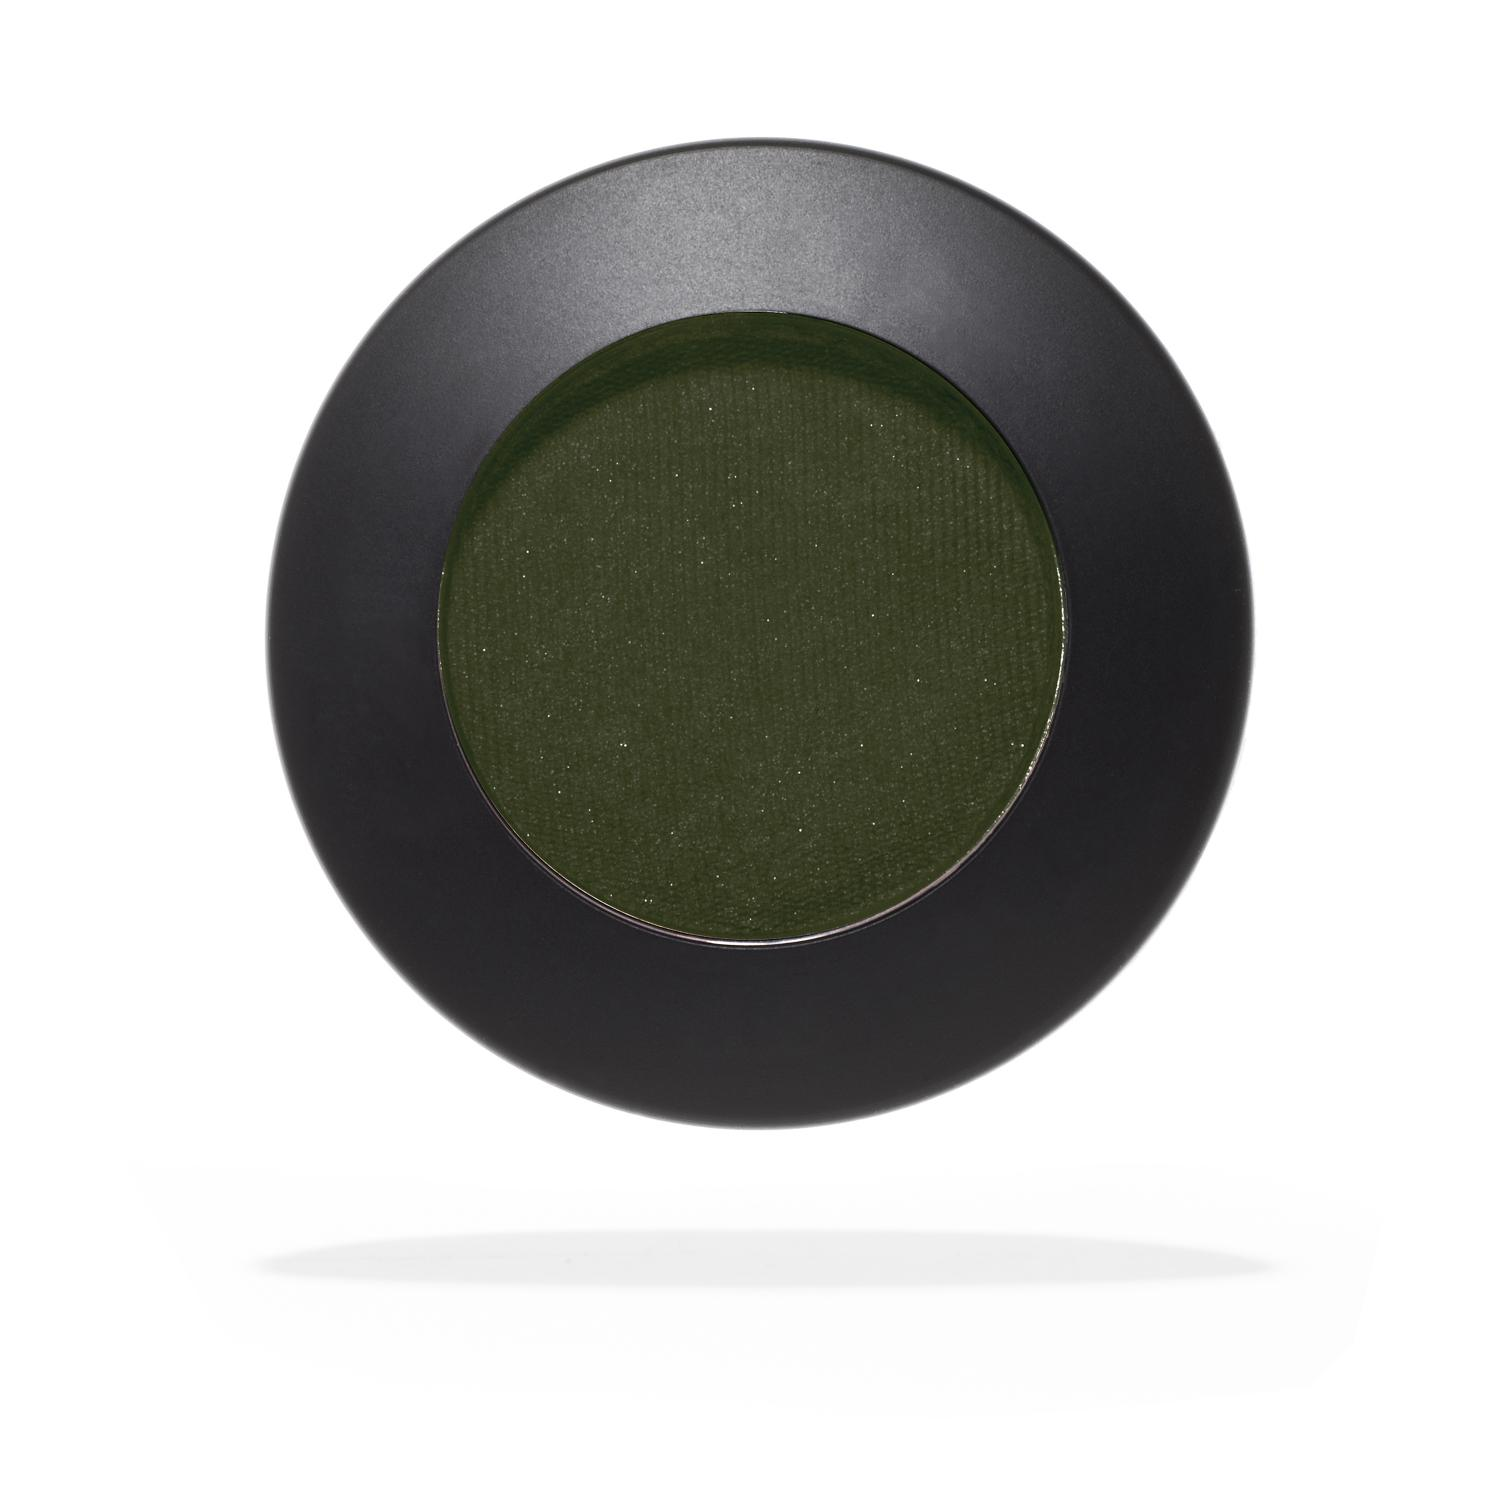 CRAM - MICRONIZED EYE SHADOW